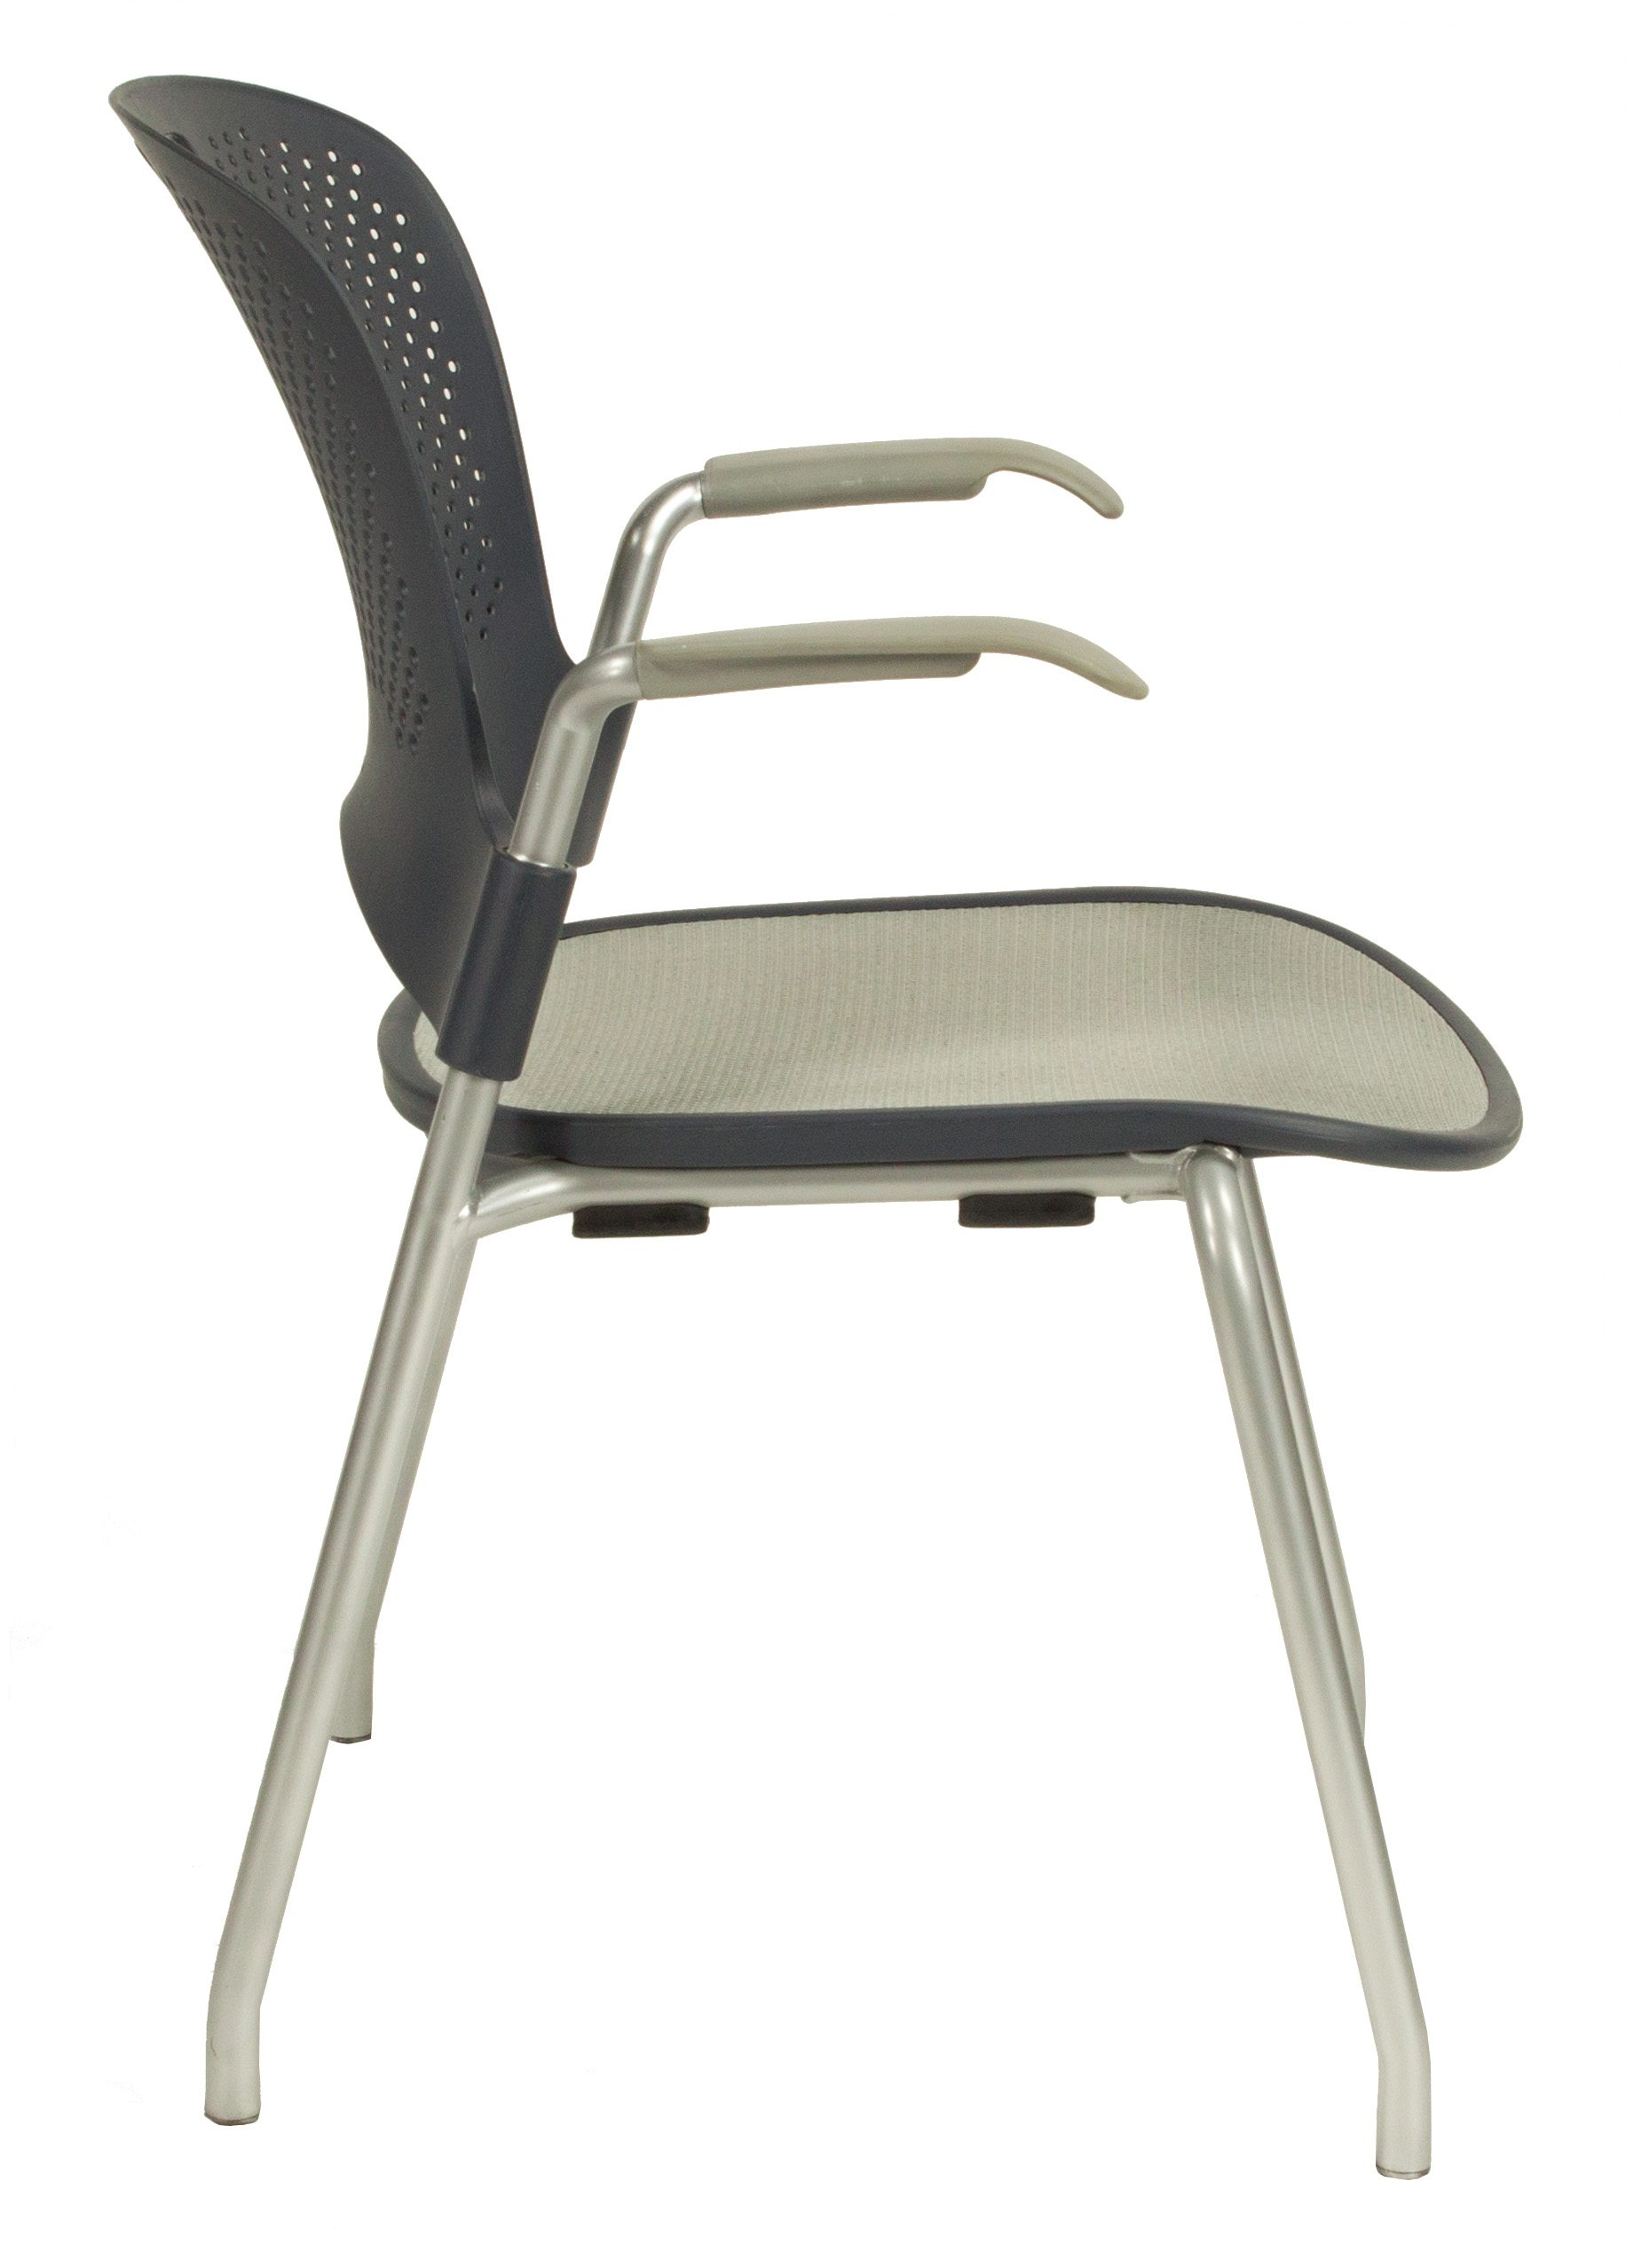 herman miller stacking chairs rocking chair craigslist caper used gray national